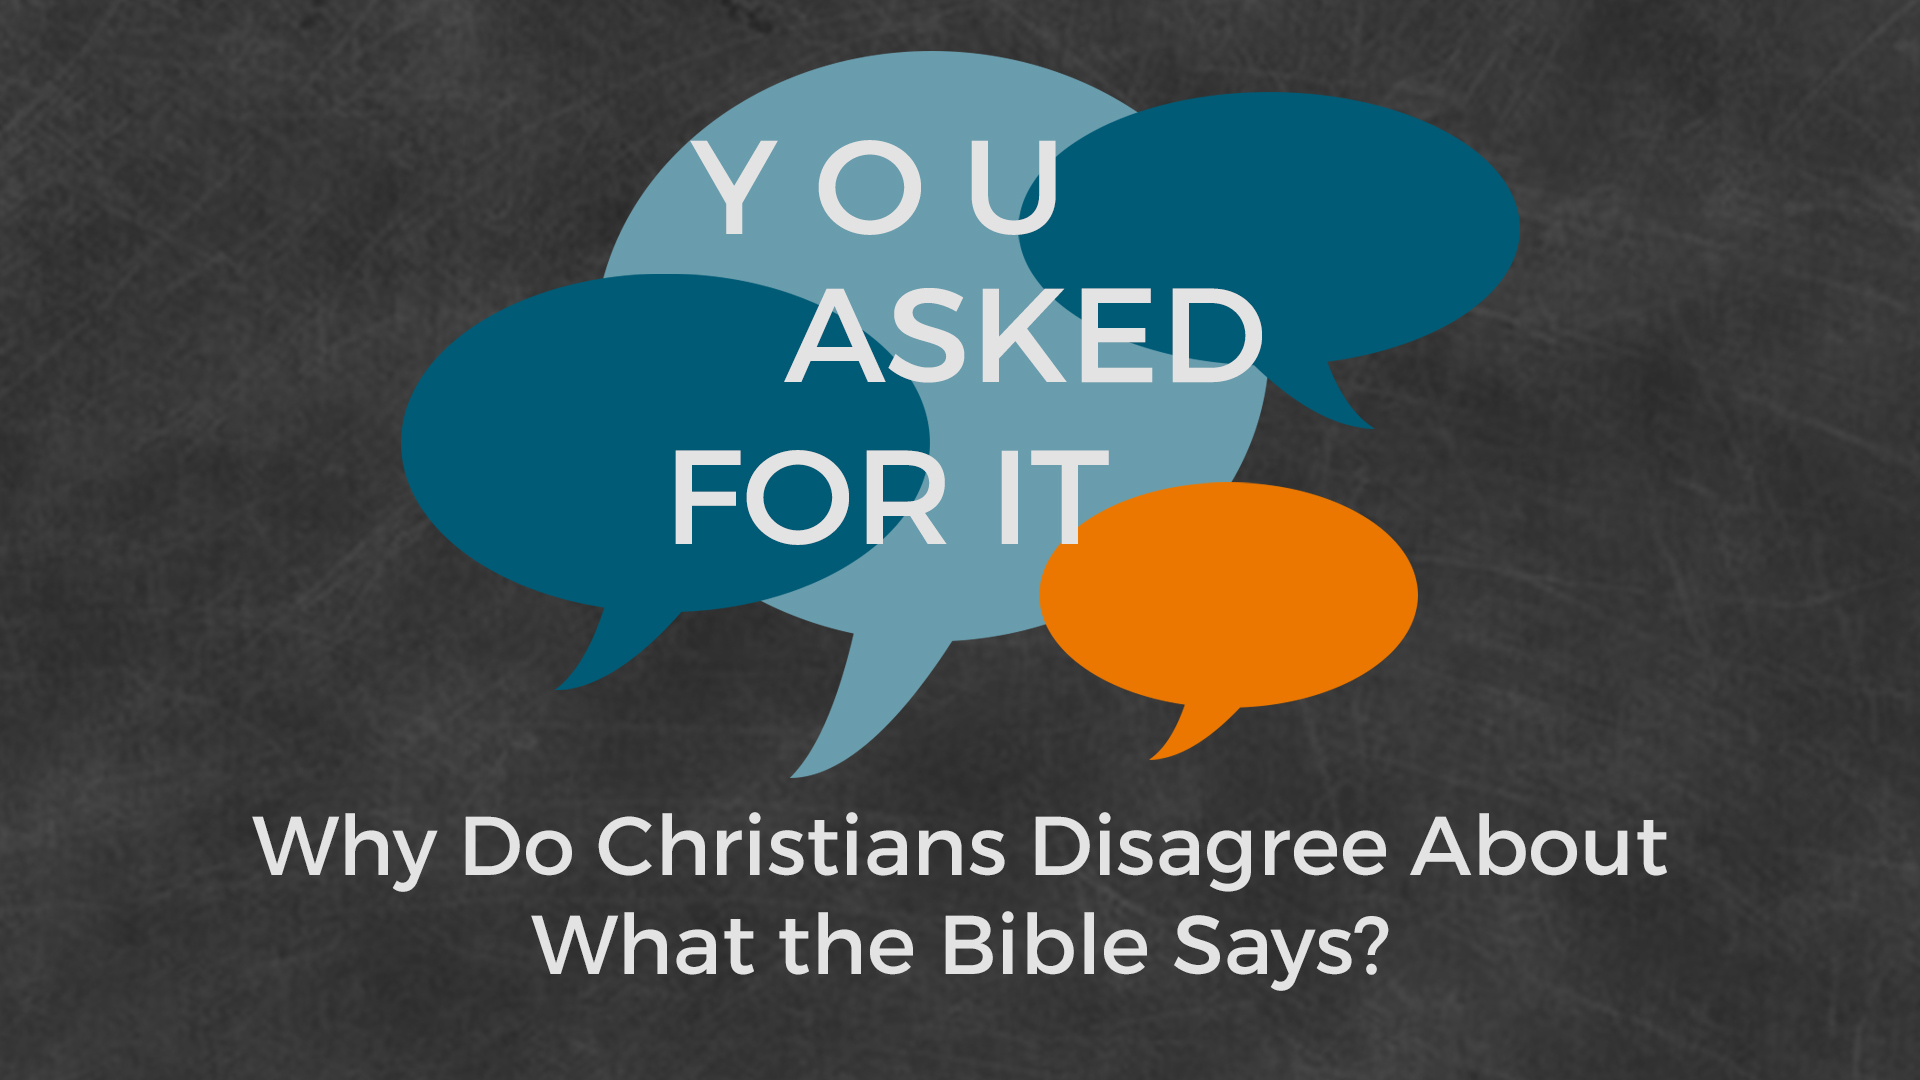 Why Do Christians Disagree About What the Bible Teaches?